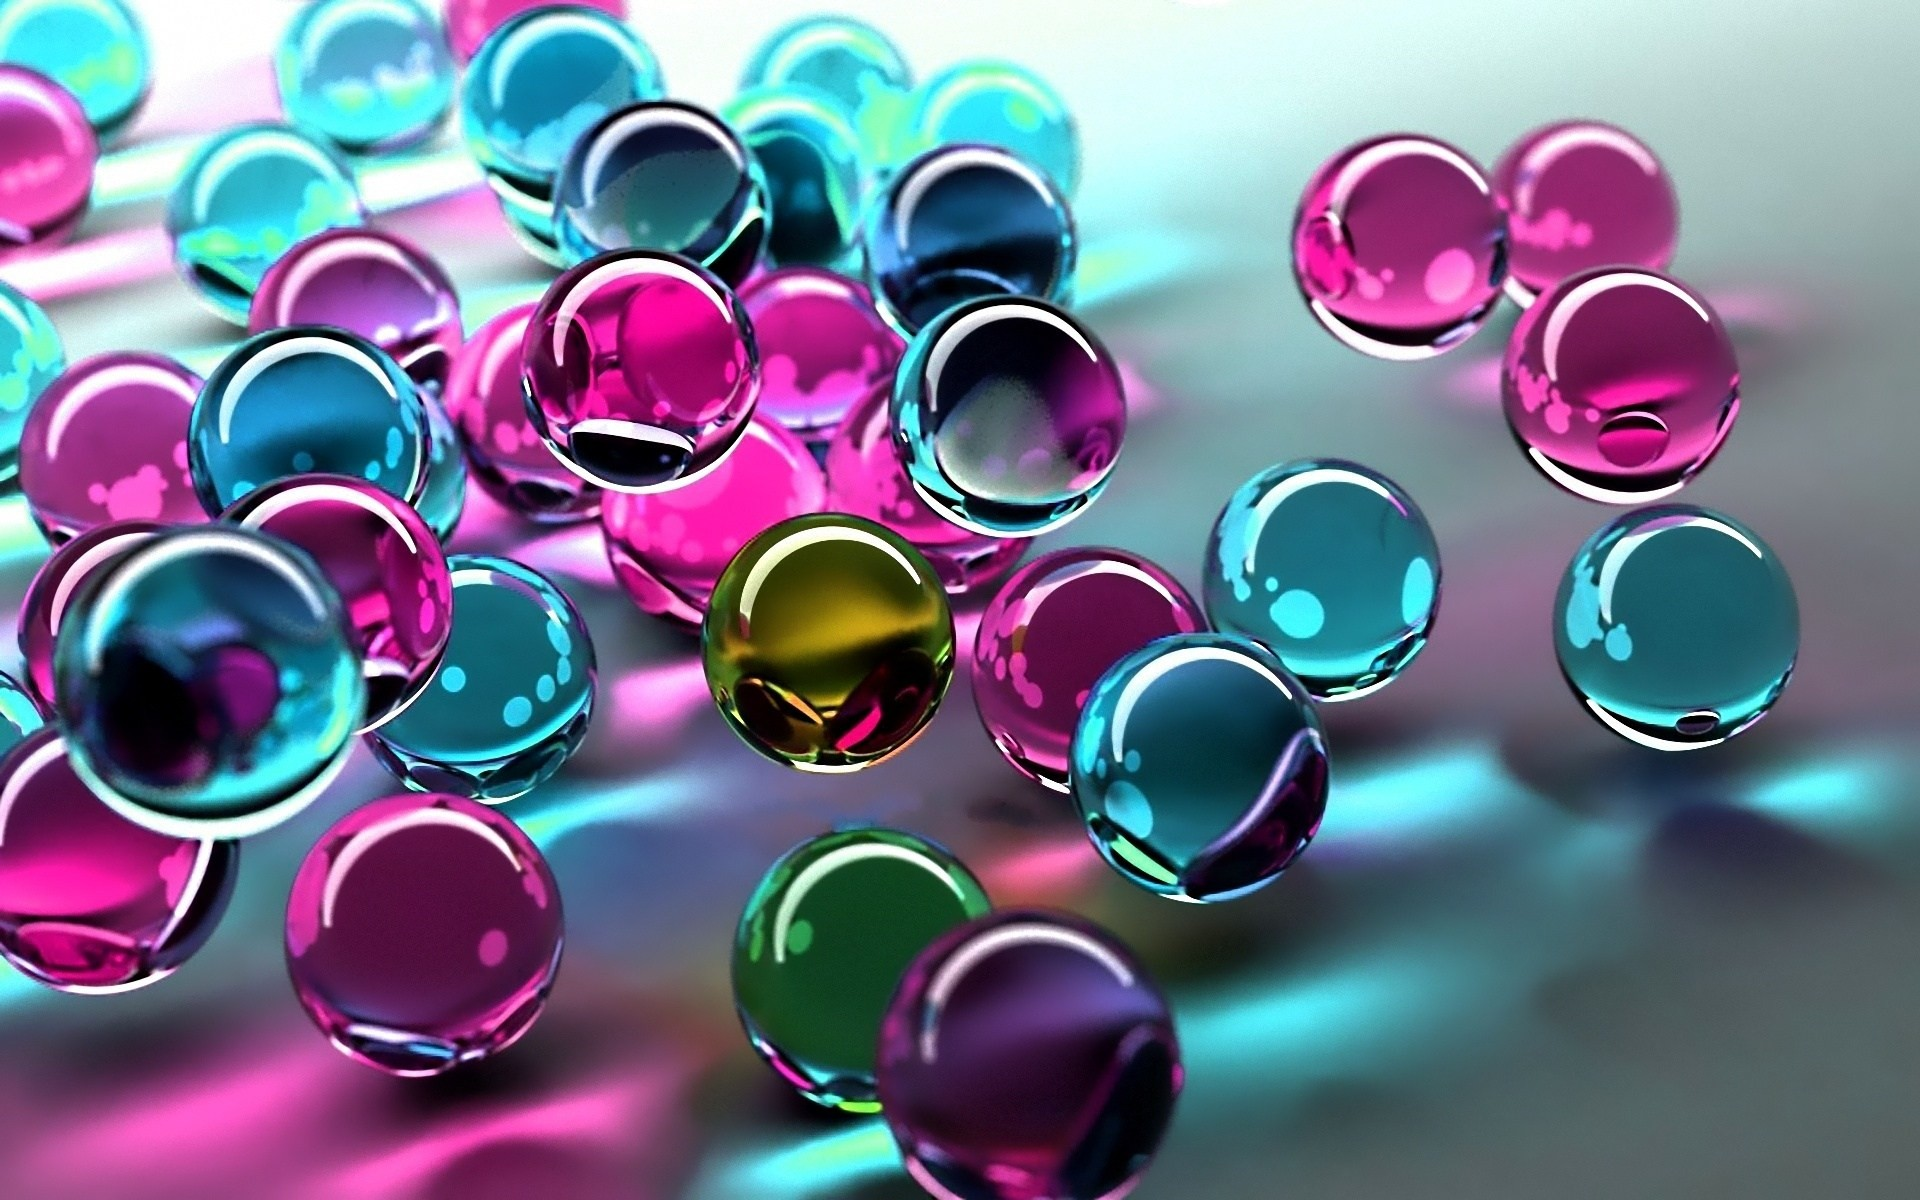 Stylish Wallpaper 65 Images HD Wallpapers Download Free Images Wallpaper [1000image.com]